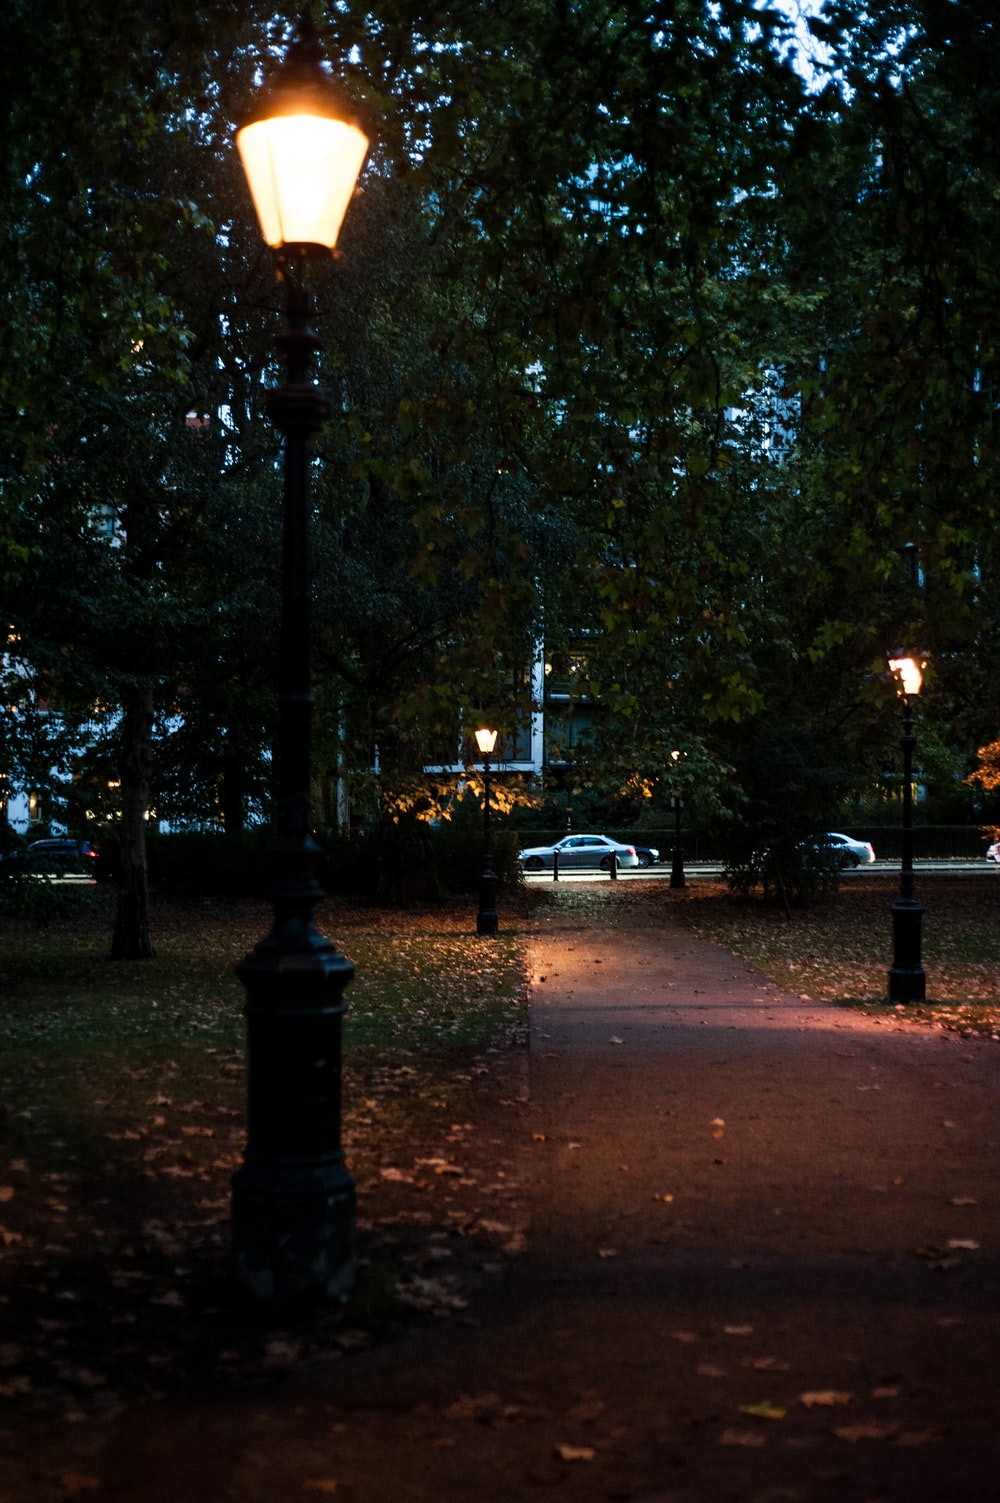 park with lampposts turned on